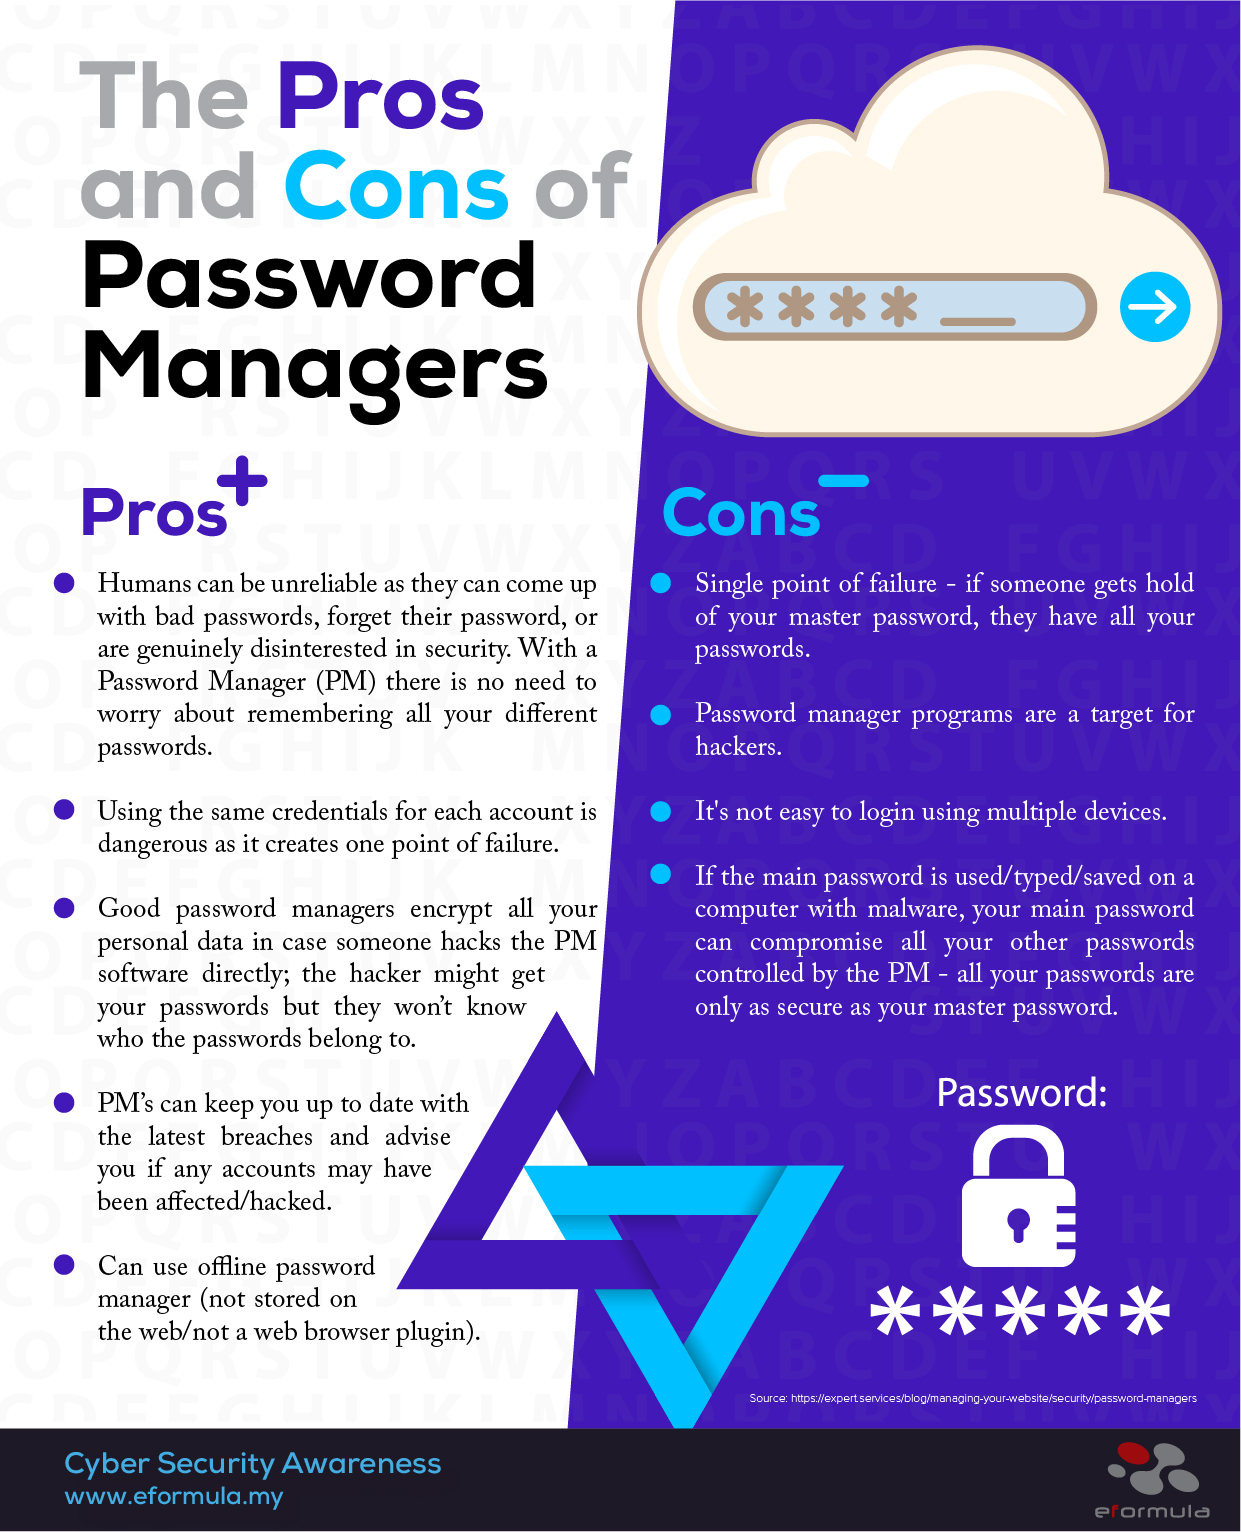 The pros and cons of password managers